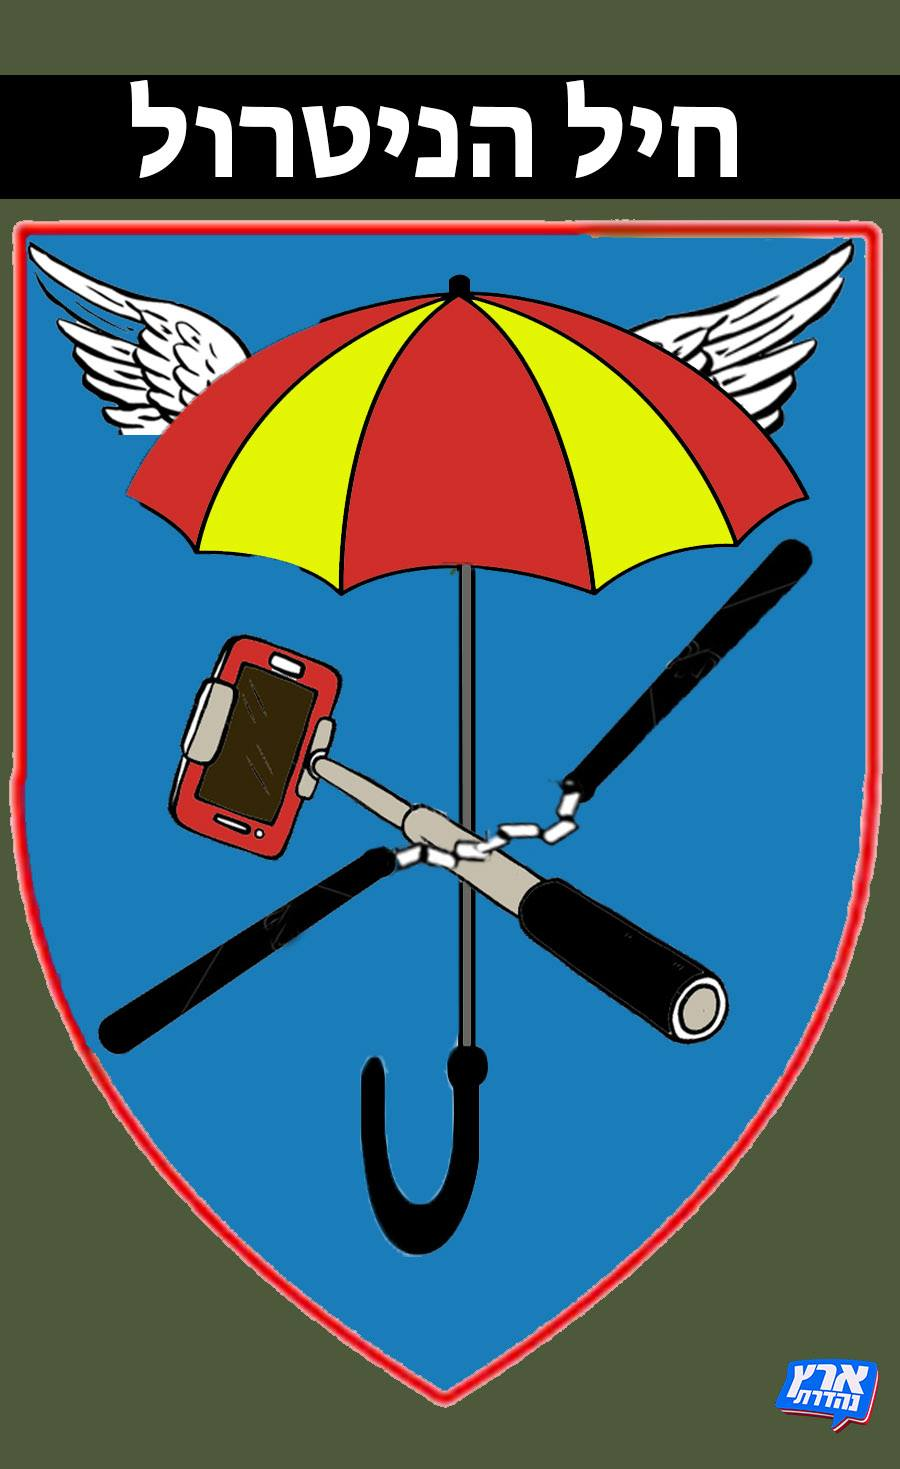 Civilian Elite Force badge by Eretz Nehederet